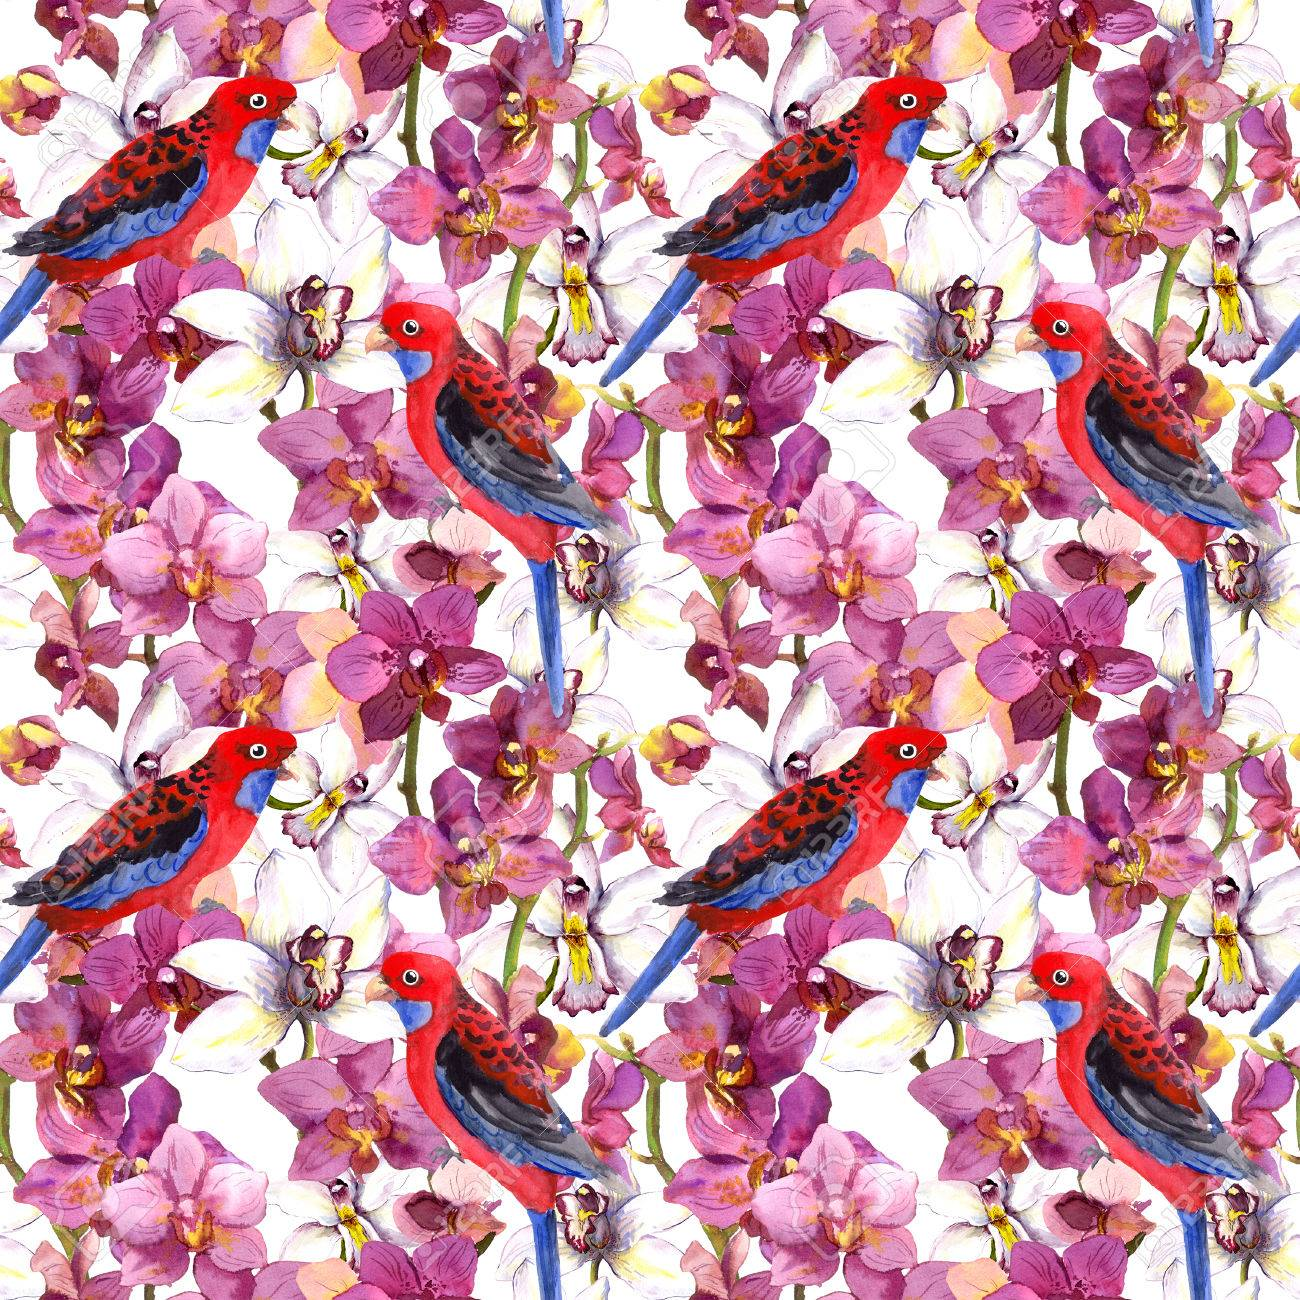 Exotic Floral Repeating Pattern Parrot Bird Blooming Orchid